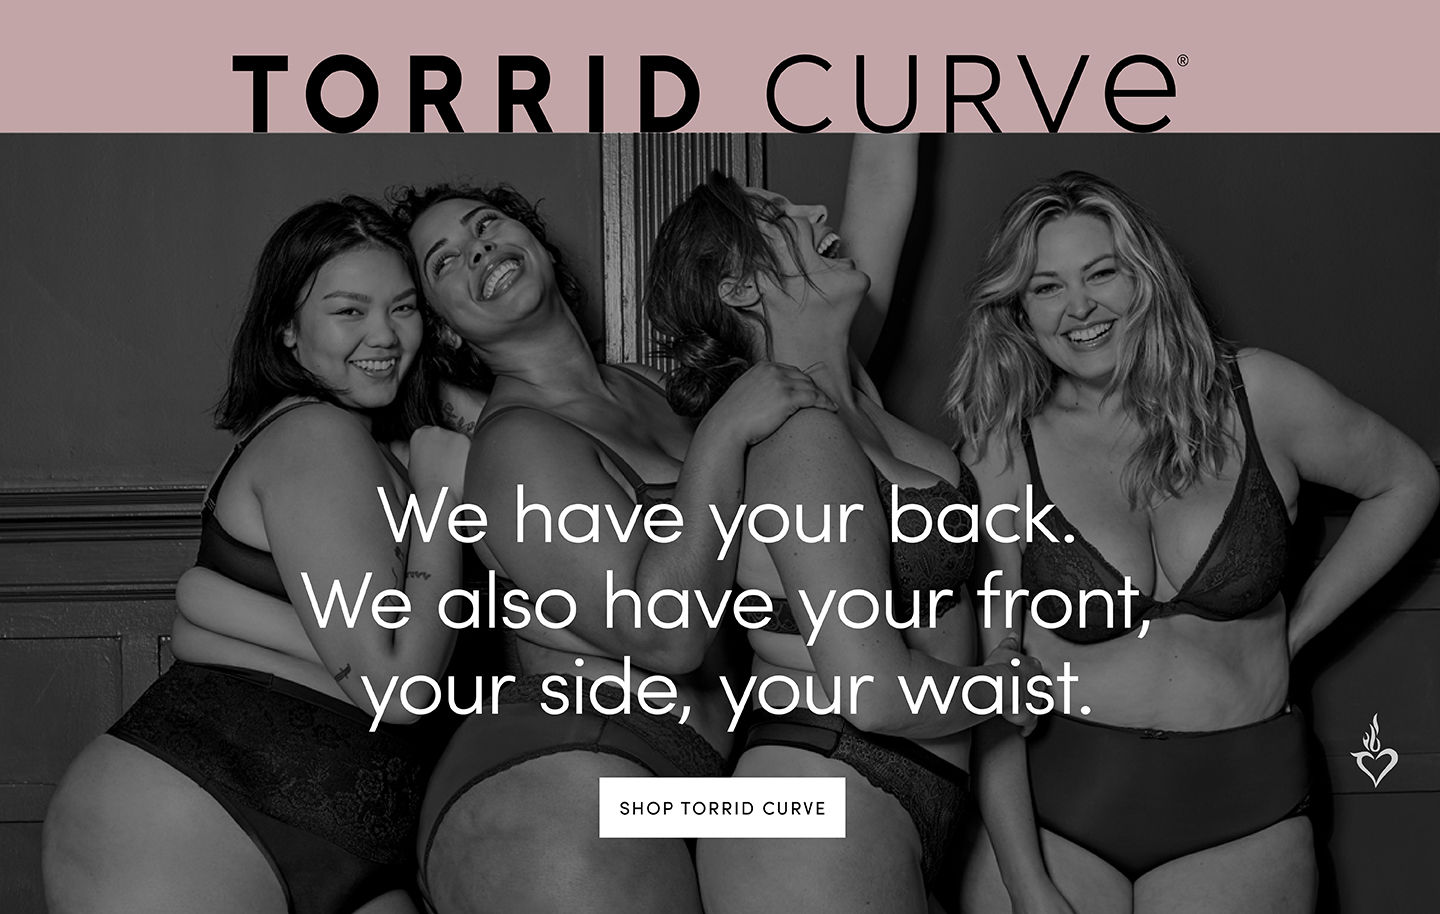 Torrid Curve. We have your back. We also have your front, your side, your waist.